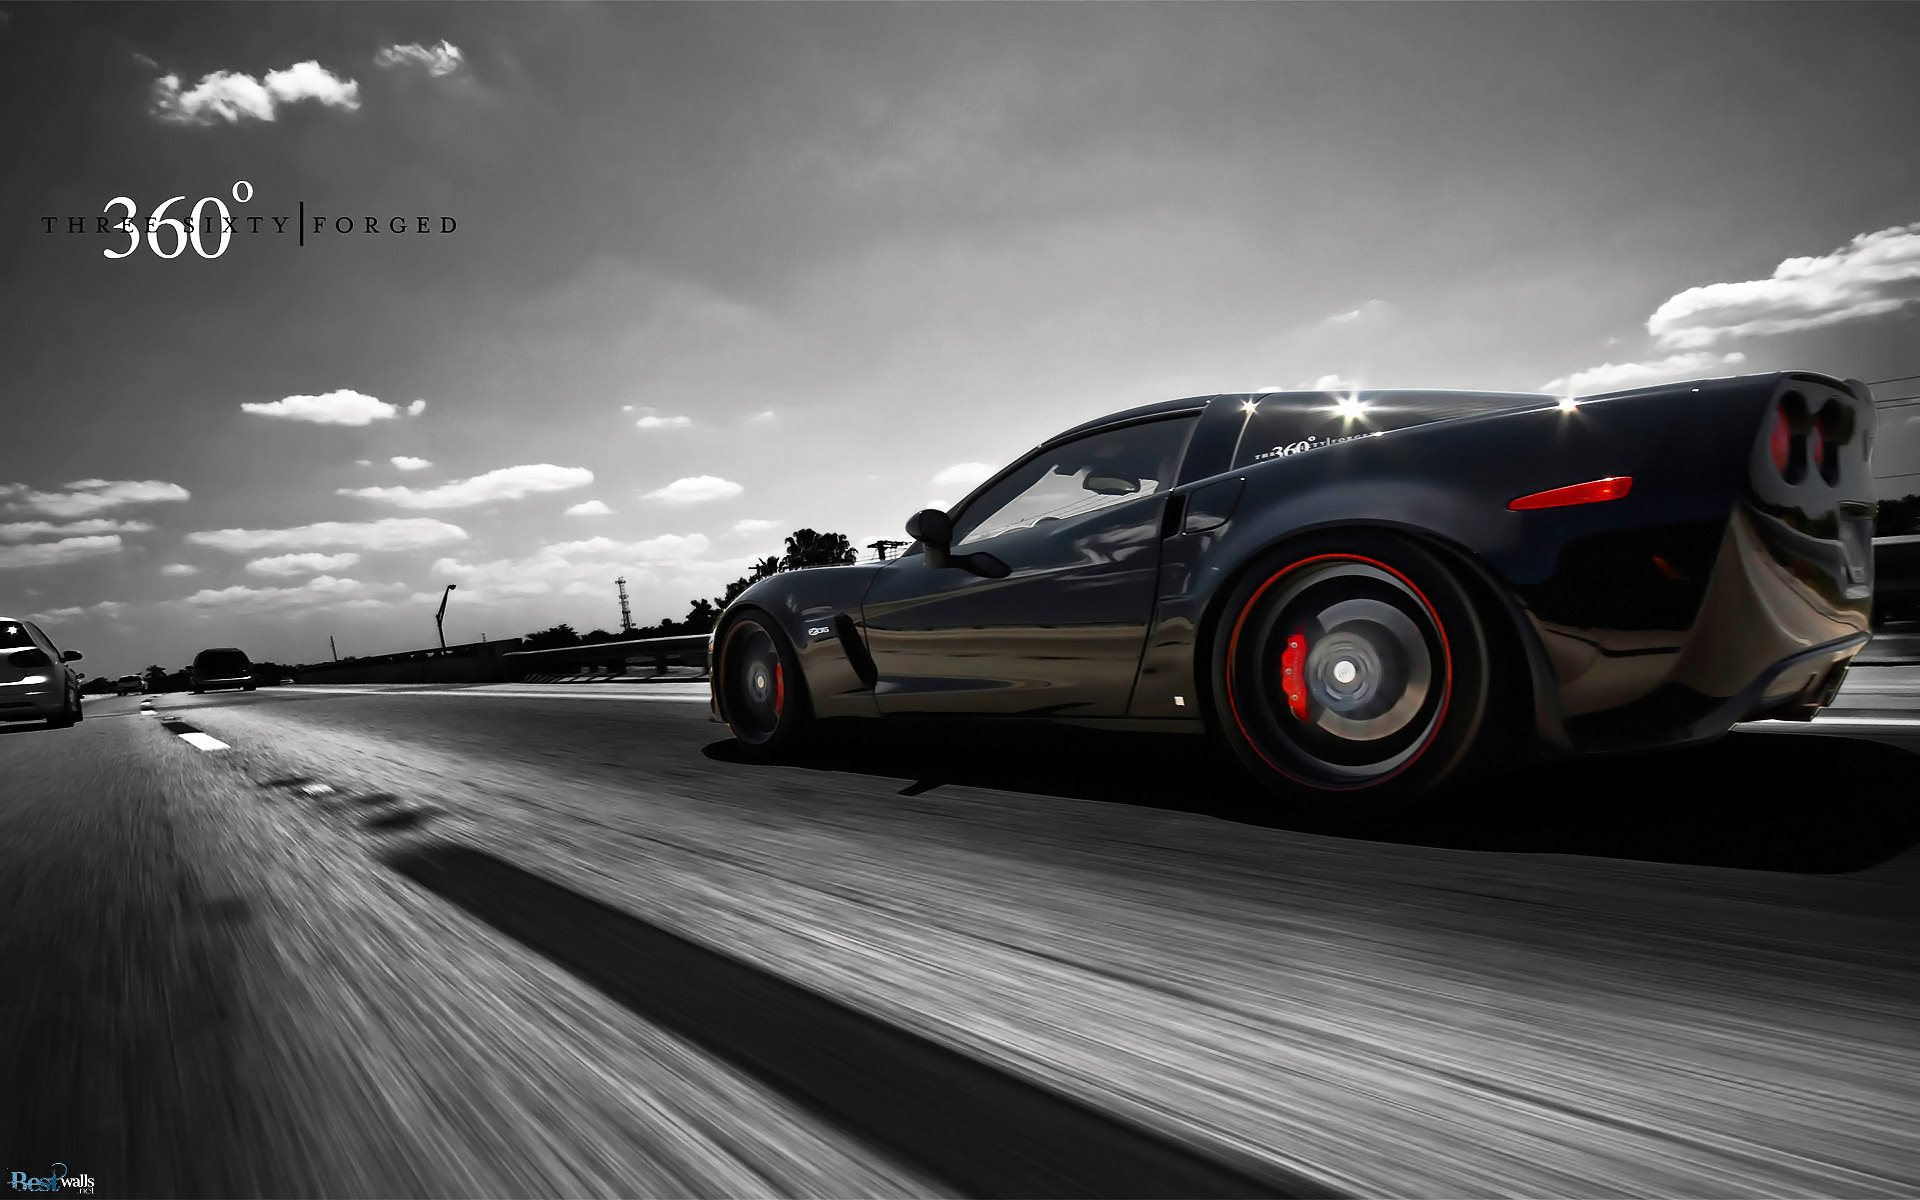 ... 2013 Chevy Corvette Z06 HD Wallpapers | Backgrounds - Wallpaper Abyss